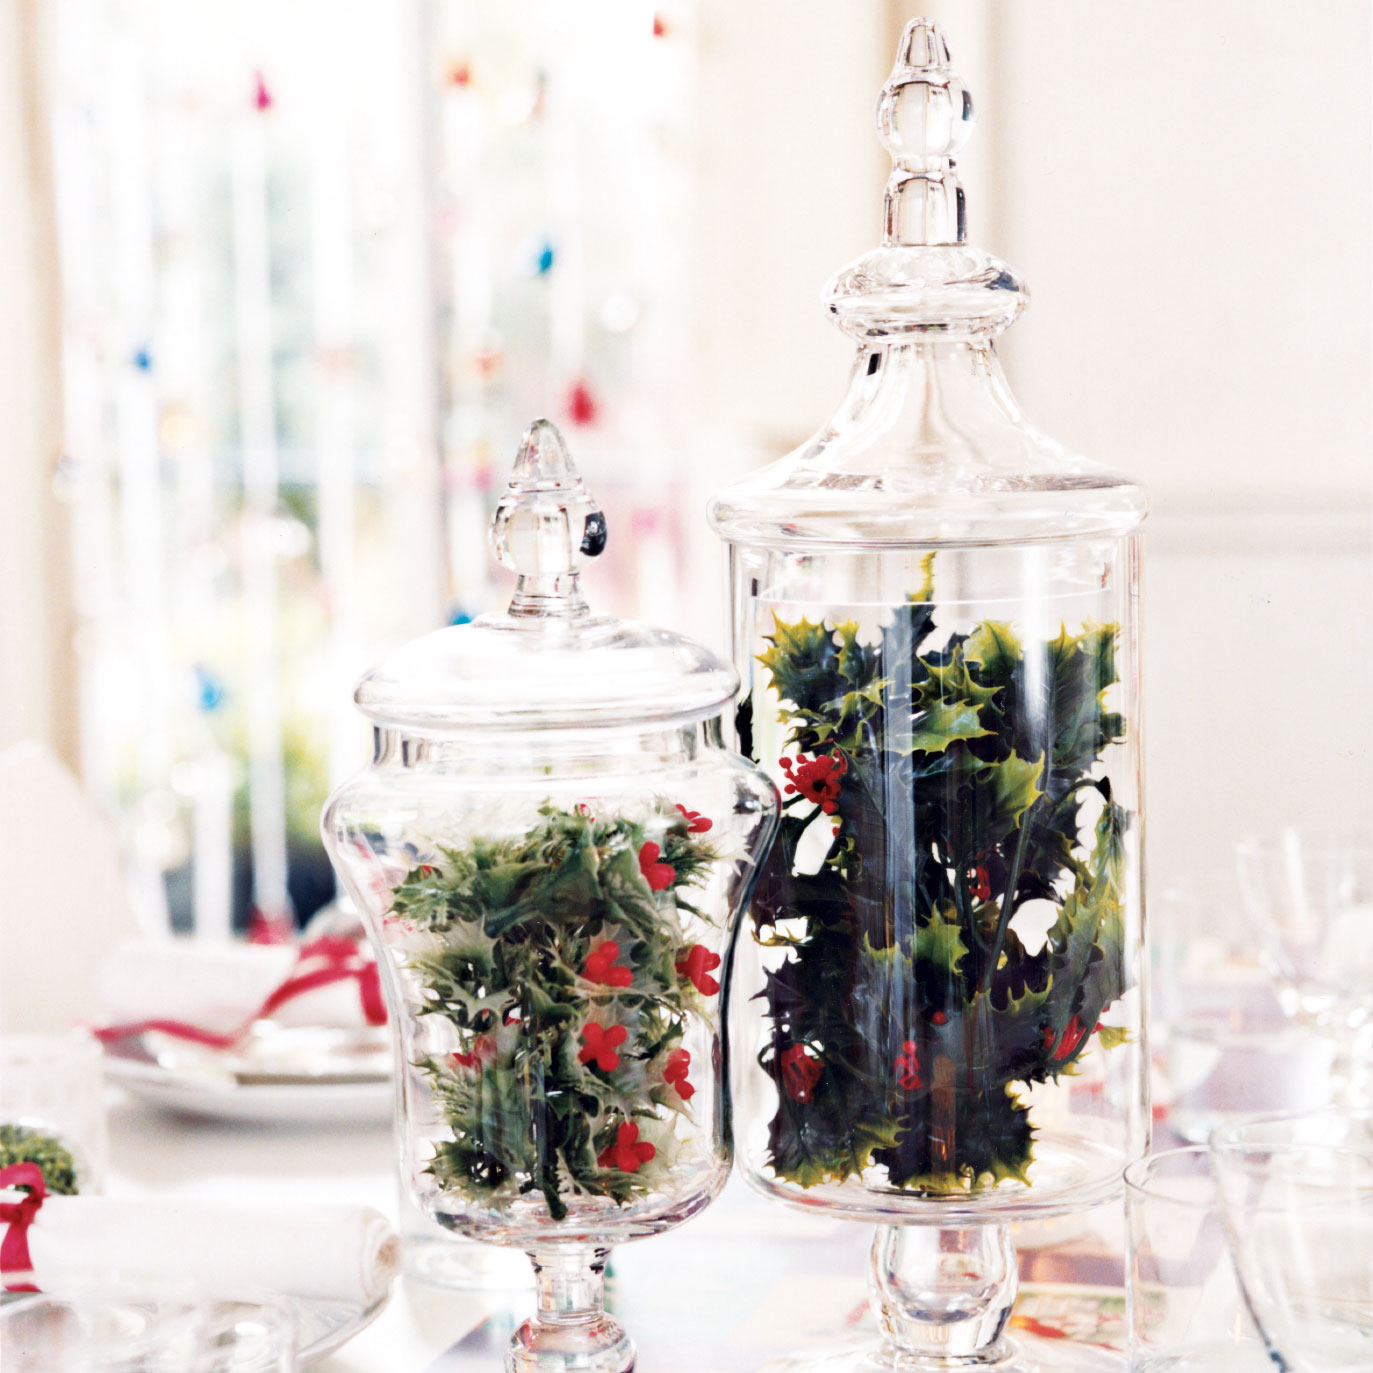 Christmas crafts ideas - Holly Centerpiece